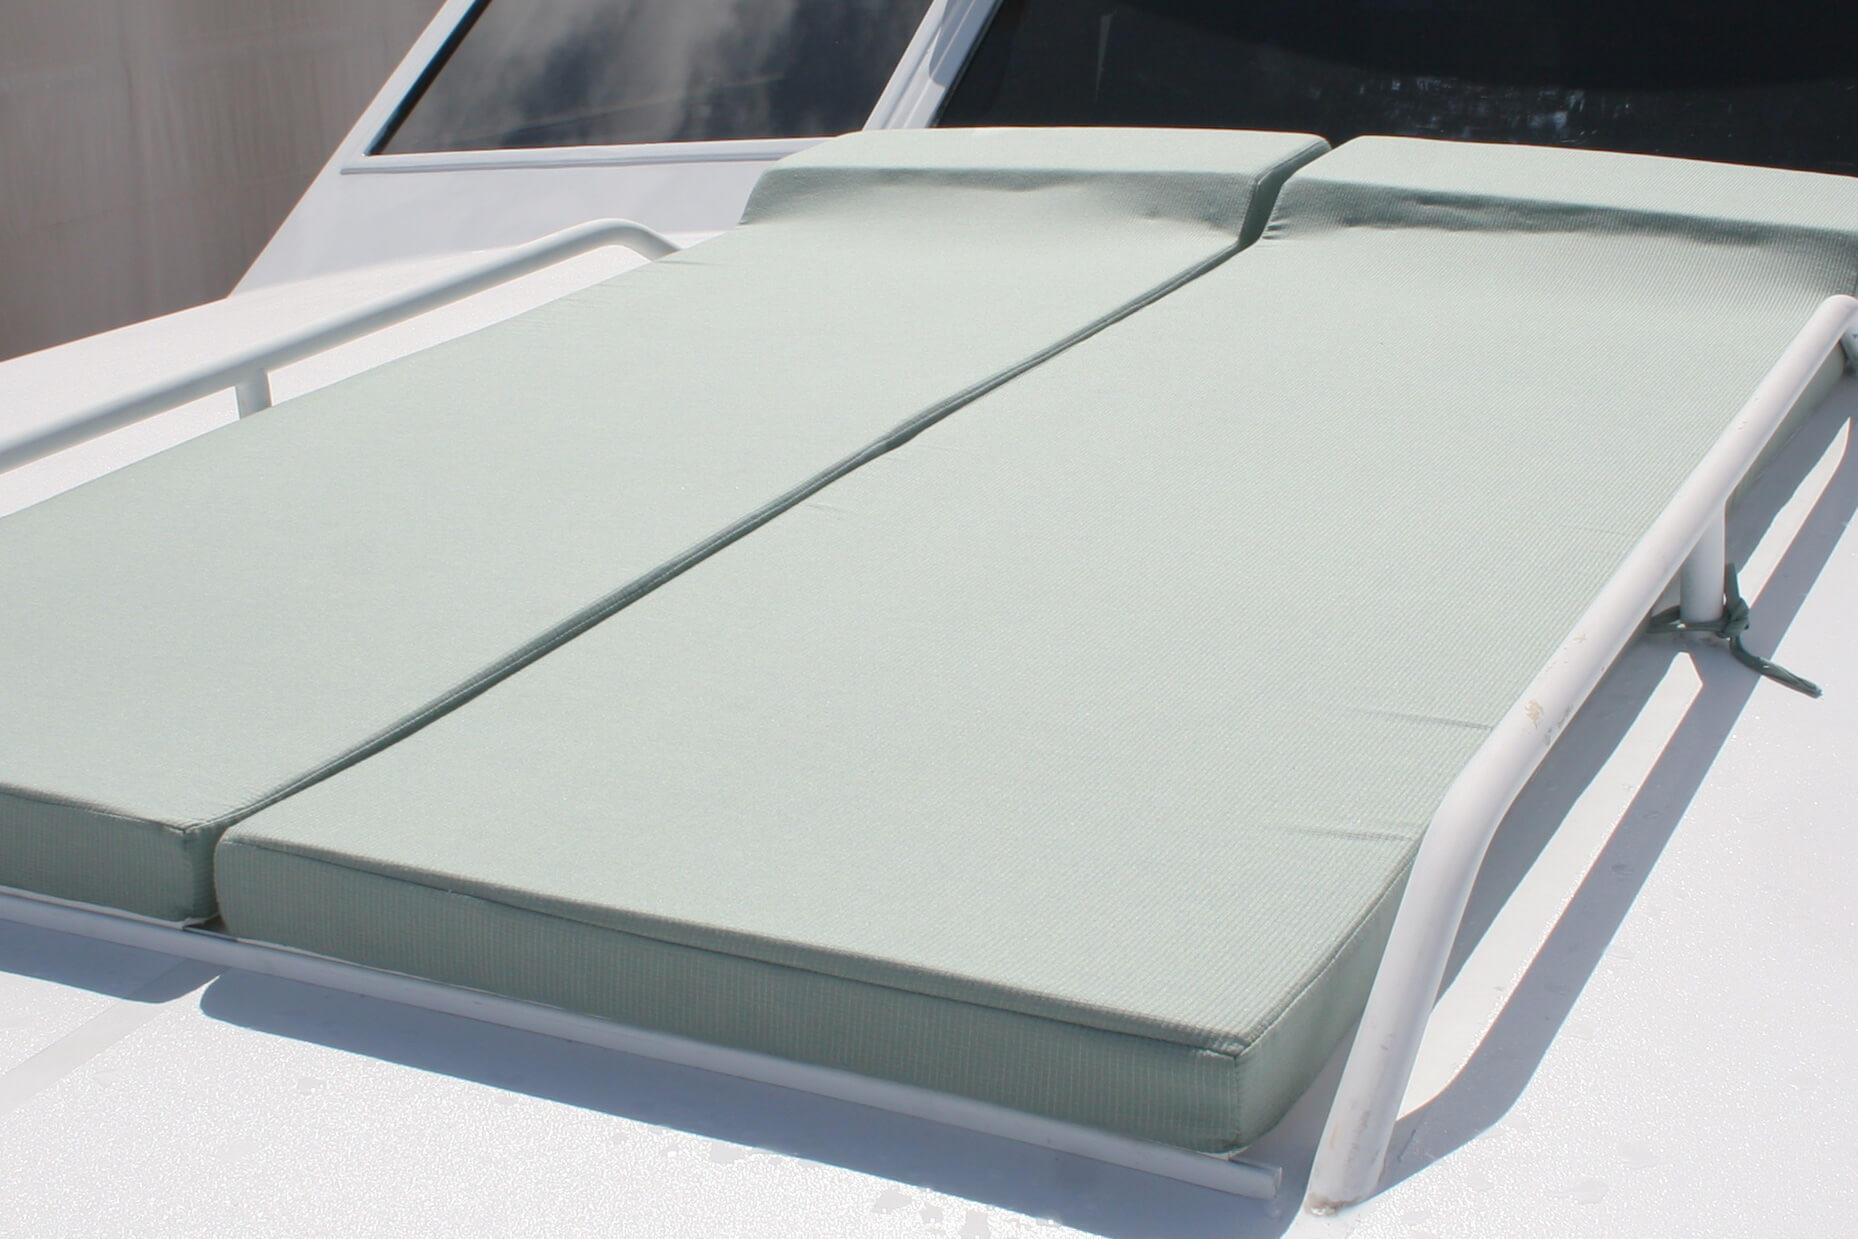 Sunpads covered in Sunbrella fabrics offer a place to enjoy the sun on a boat deck